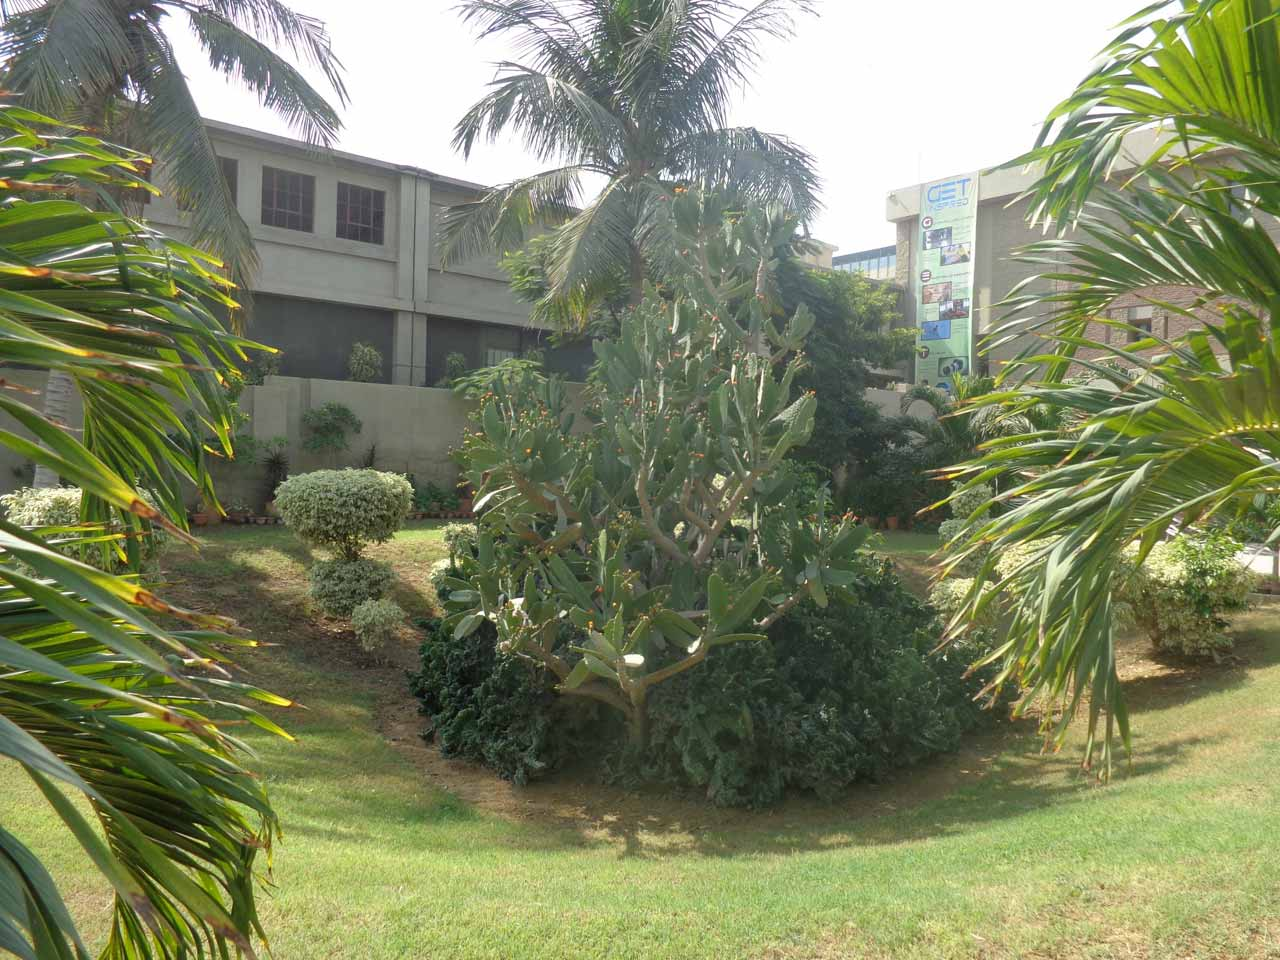 Greenery at the entrance of the school gate